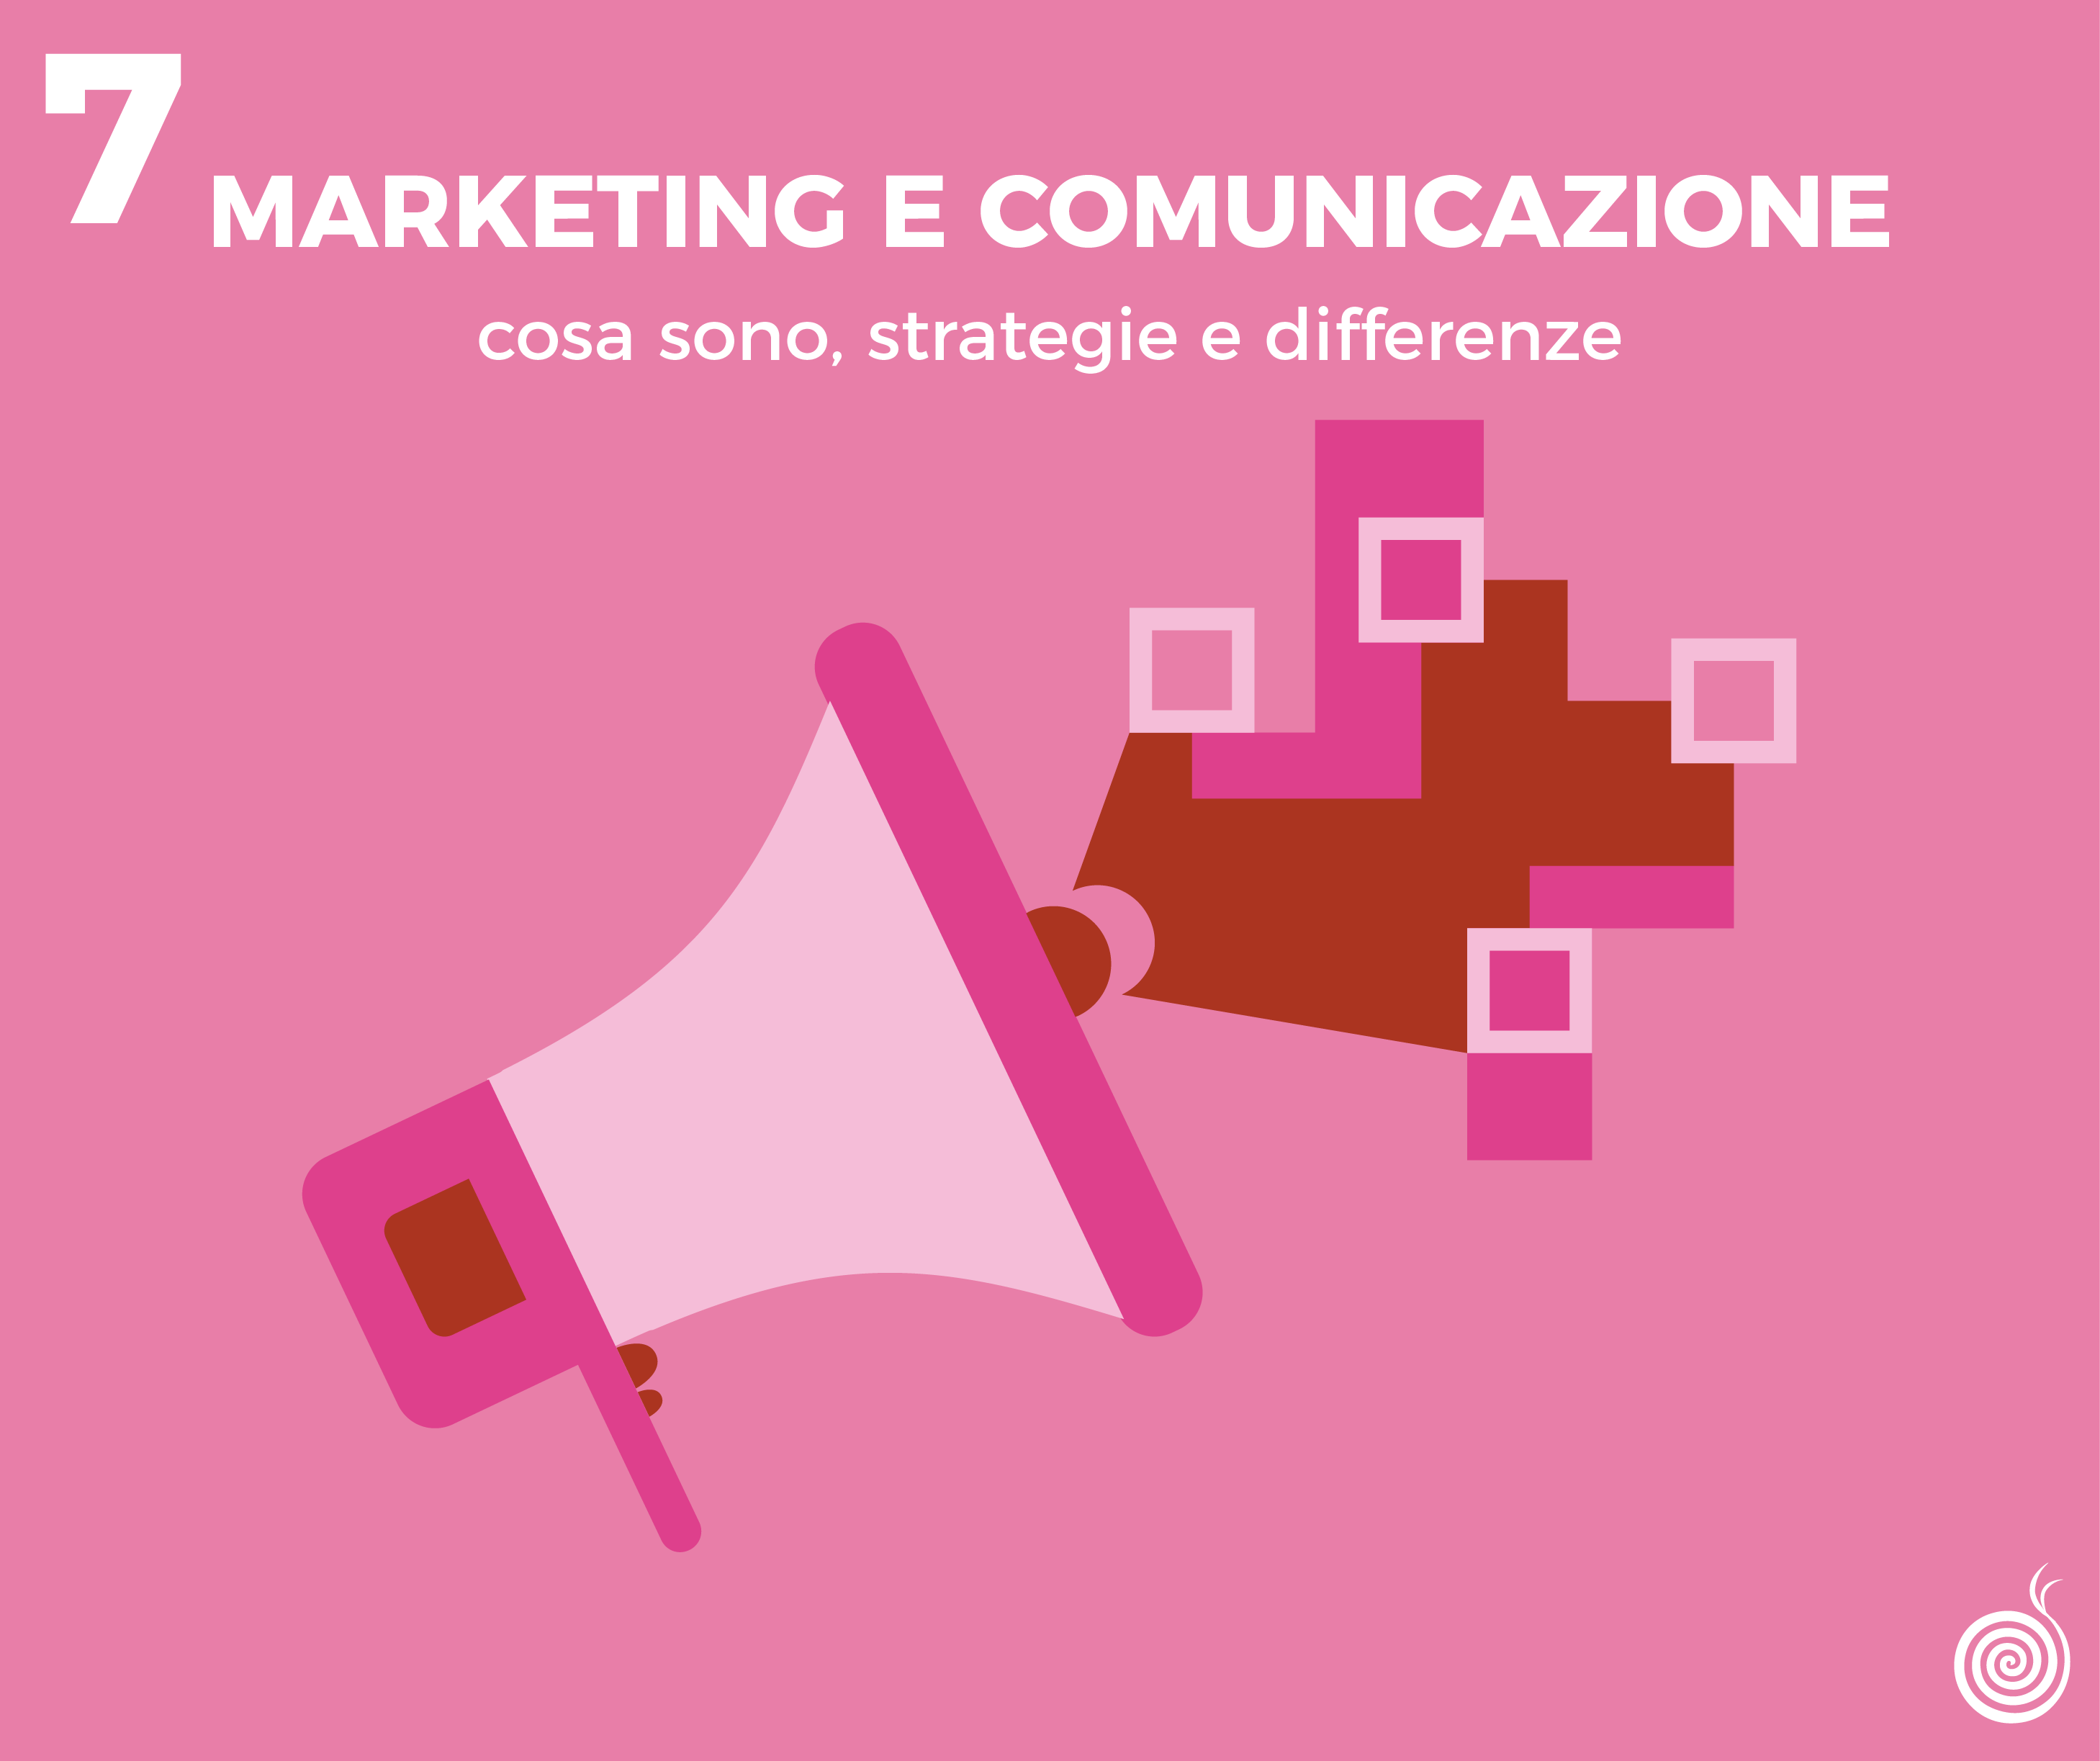 Marketing e comunicazione: cosa sono, strategie e differenze